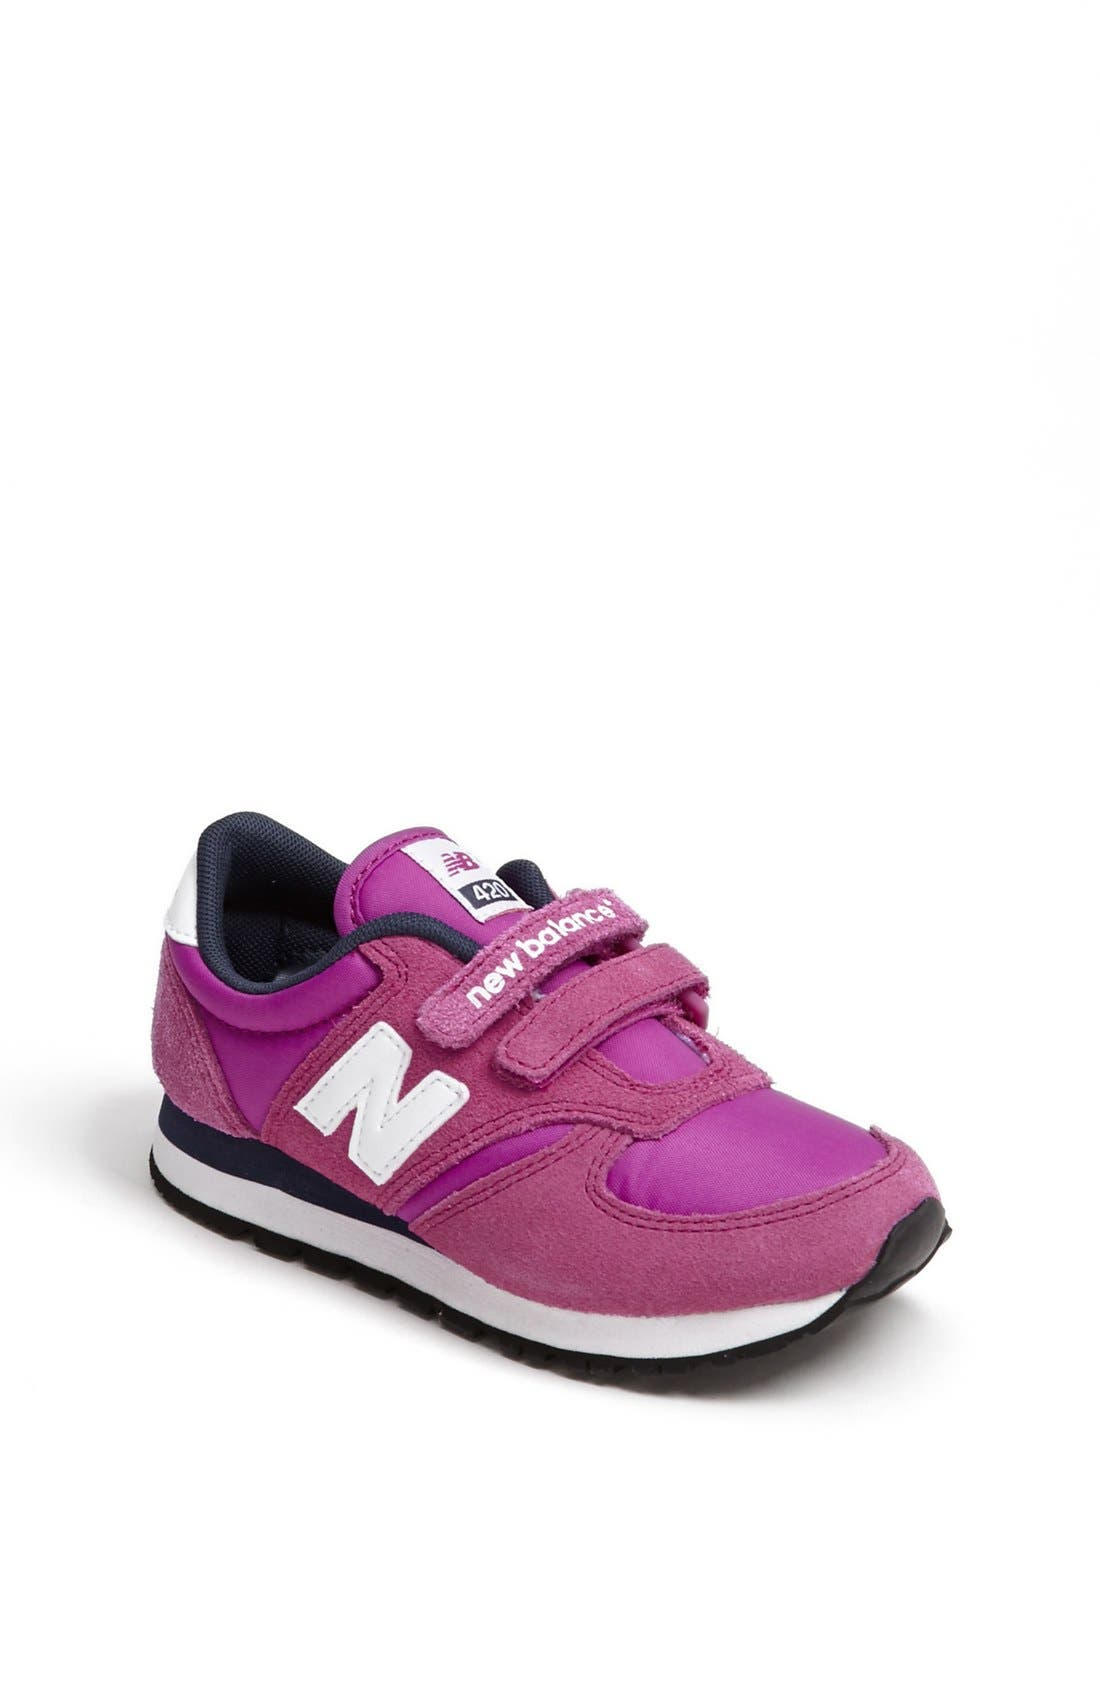 Main Image - New Balance '420 Take Down' Sneaker (Toddler, Little Kid & Big Kid)